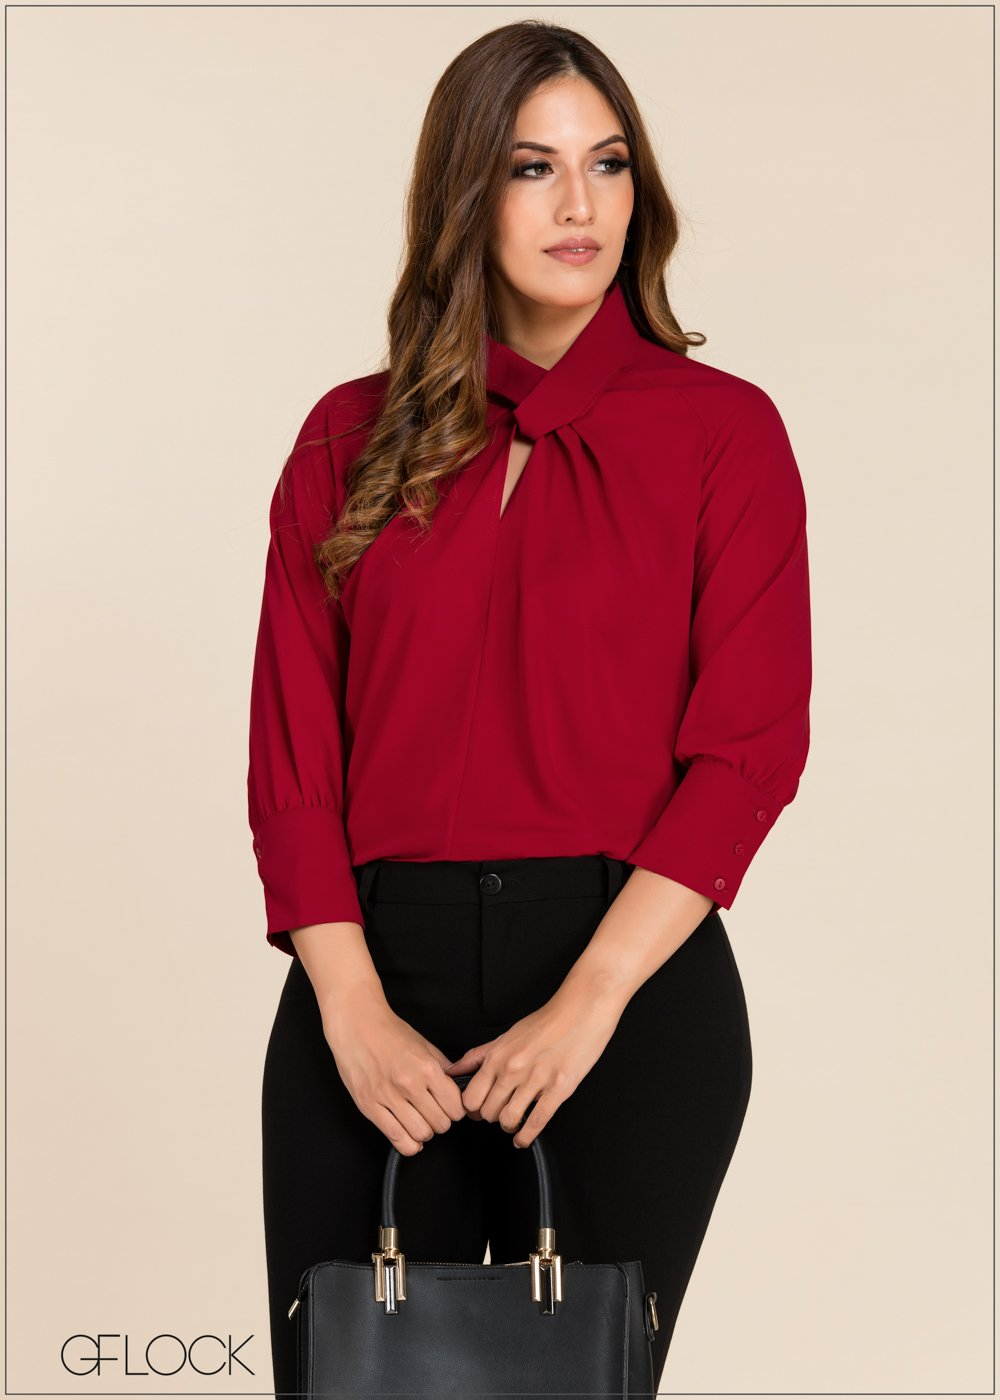 GFLOCK - [product_sku] - Women_Top - Neck Detailed Workwear Top